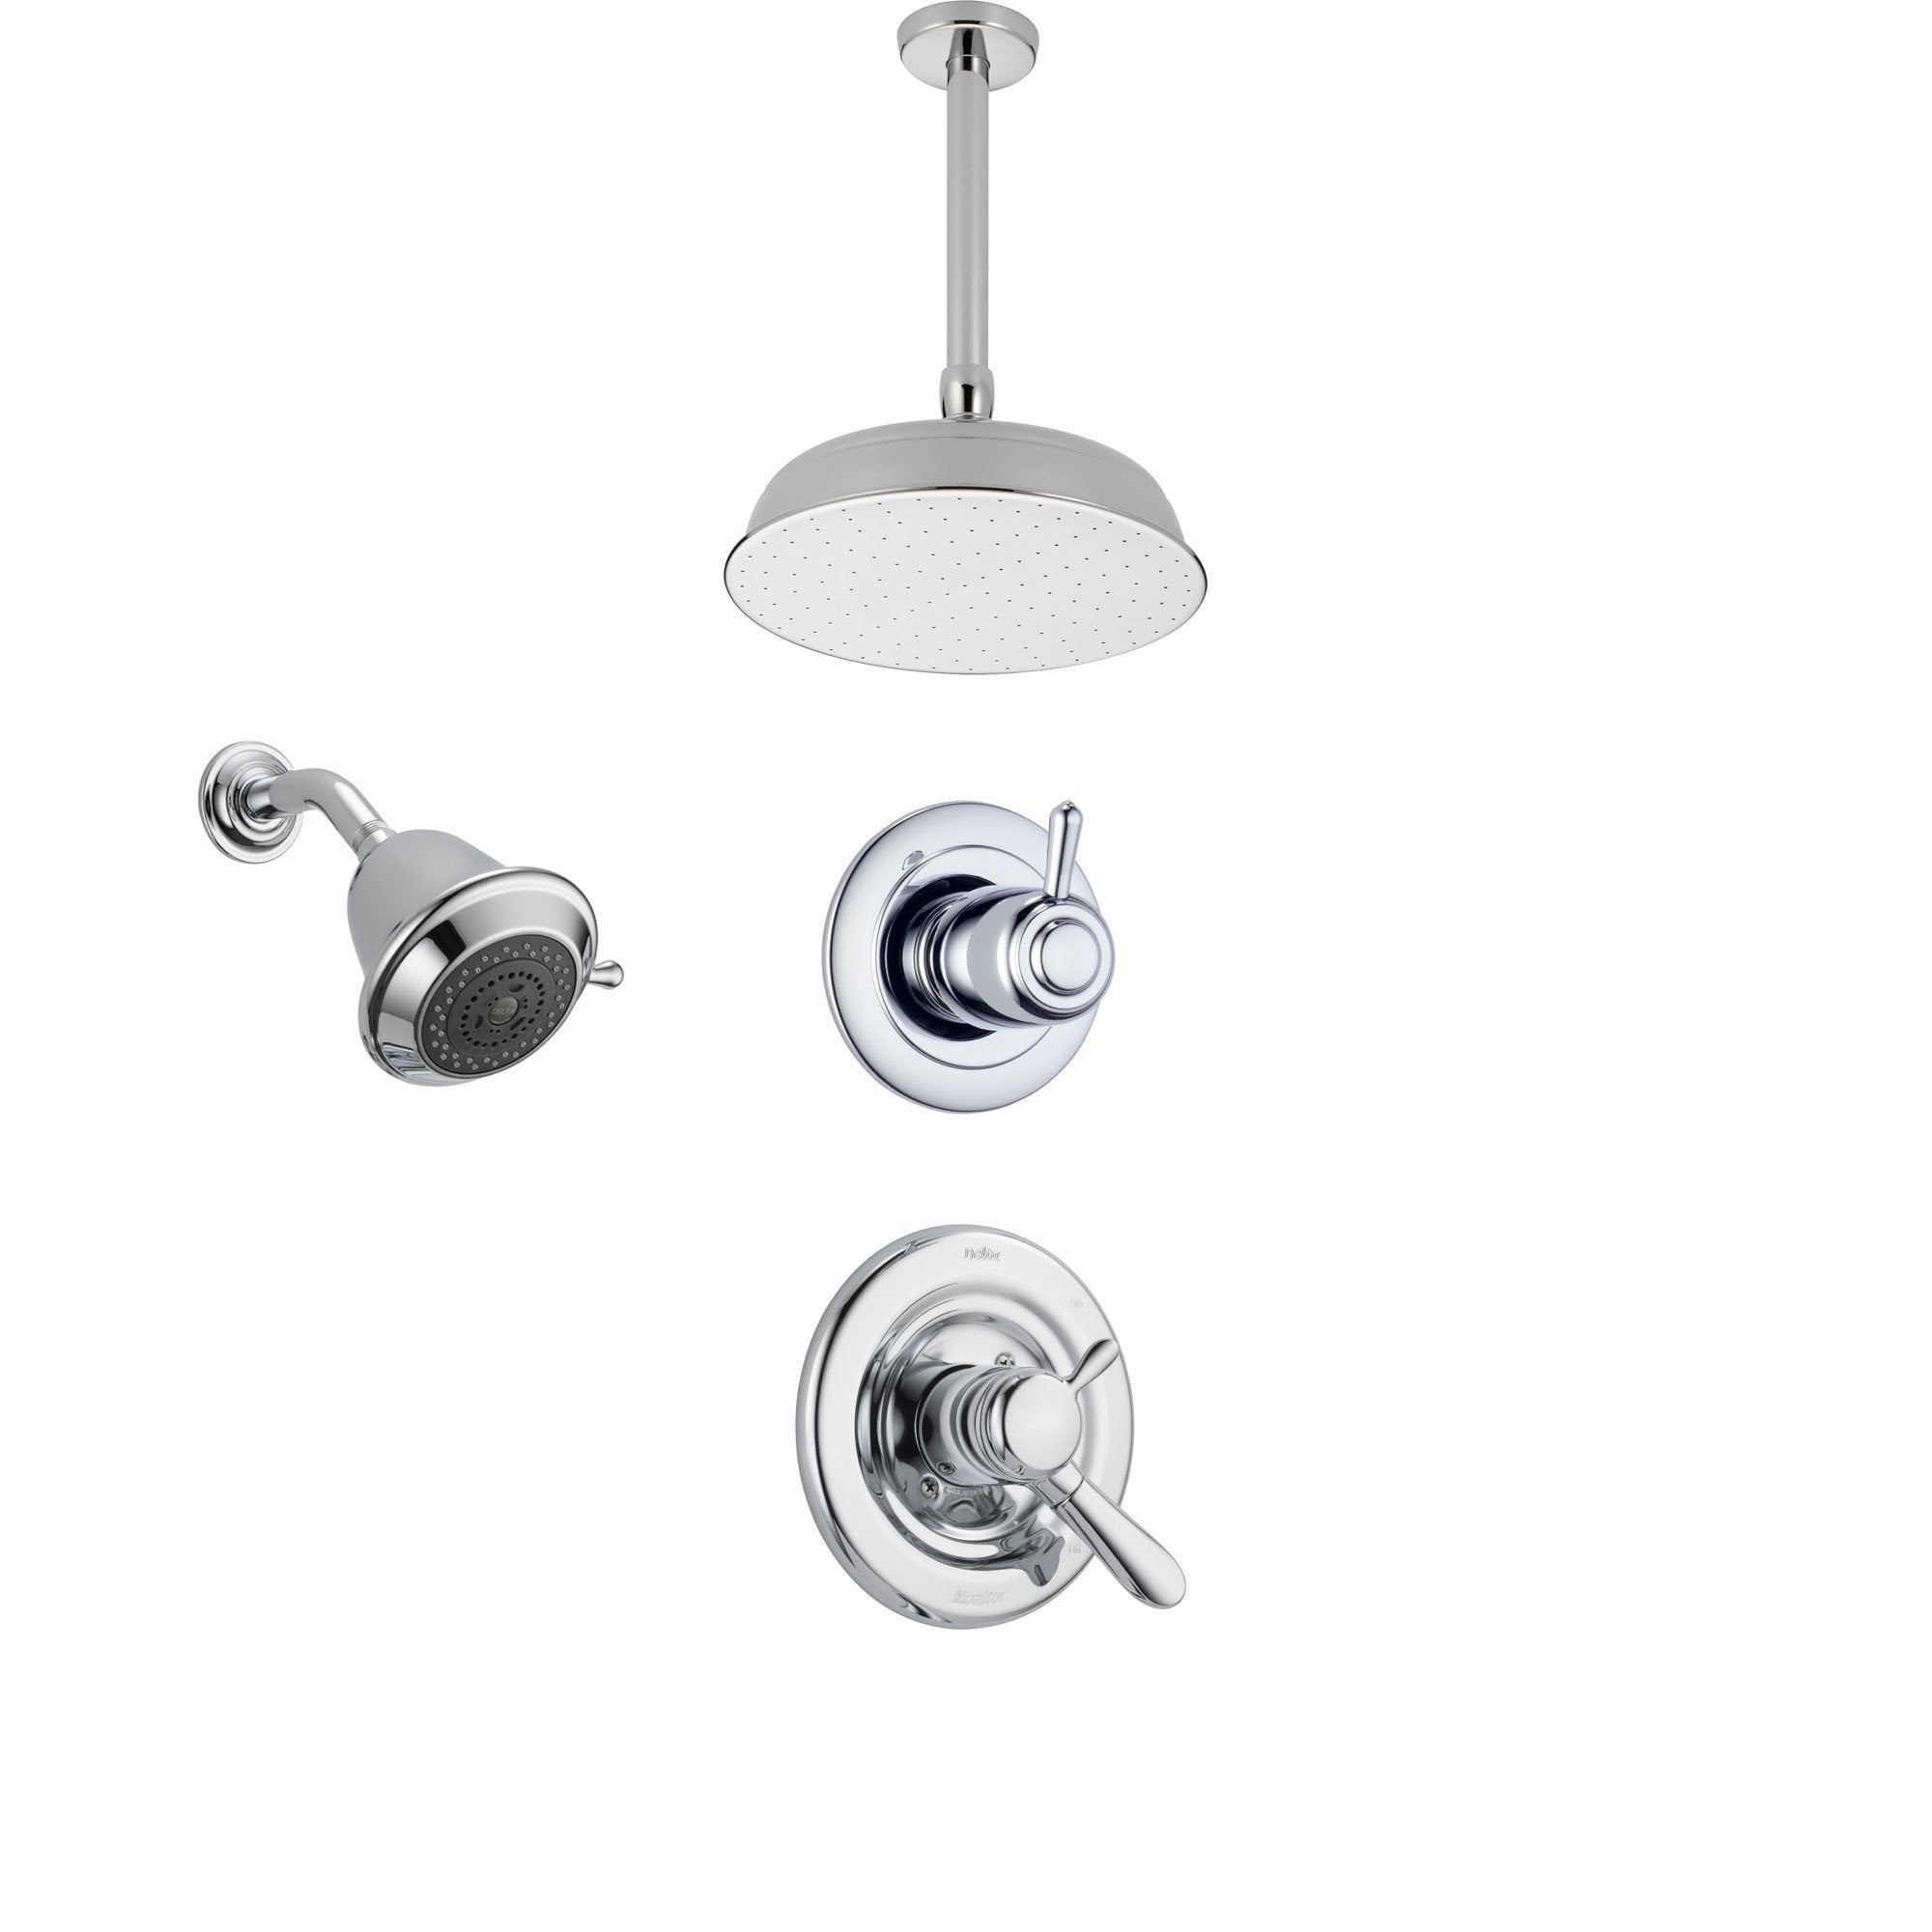 Delta Lahara Chrome Shower System with Dual Control Shower Handle, 3-setting Diverter, Large Ceiling Mount Rain Showerhead, and Wall Mount Showerhead SS173883